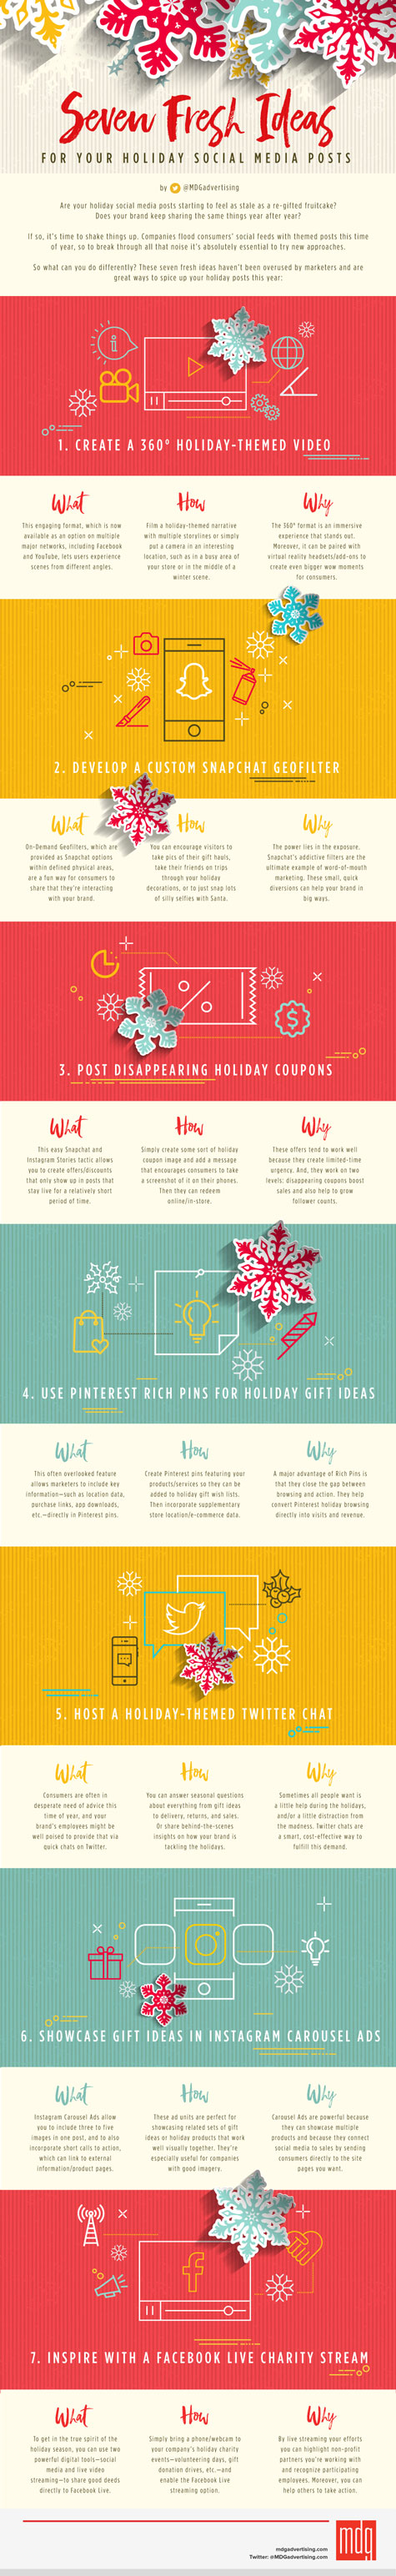 MDG 45265 475x3809 Holiday Infographic Social Media Infographic